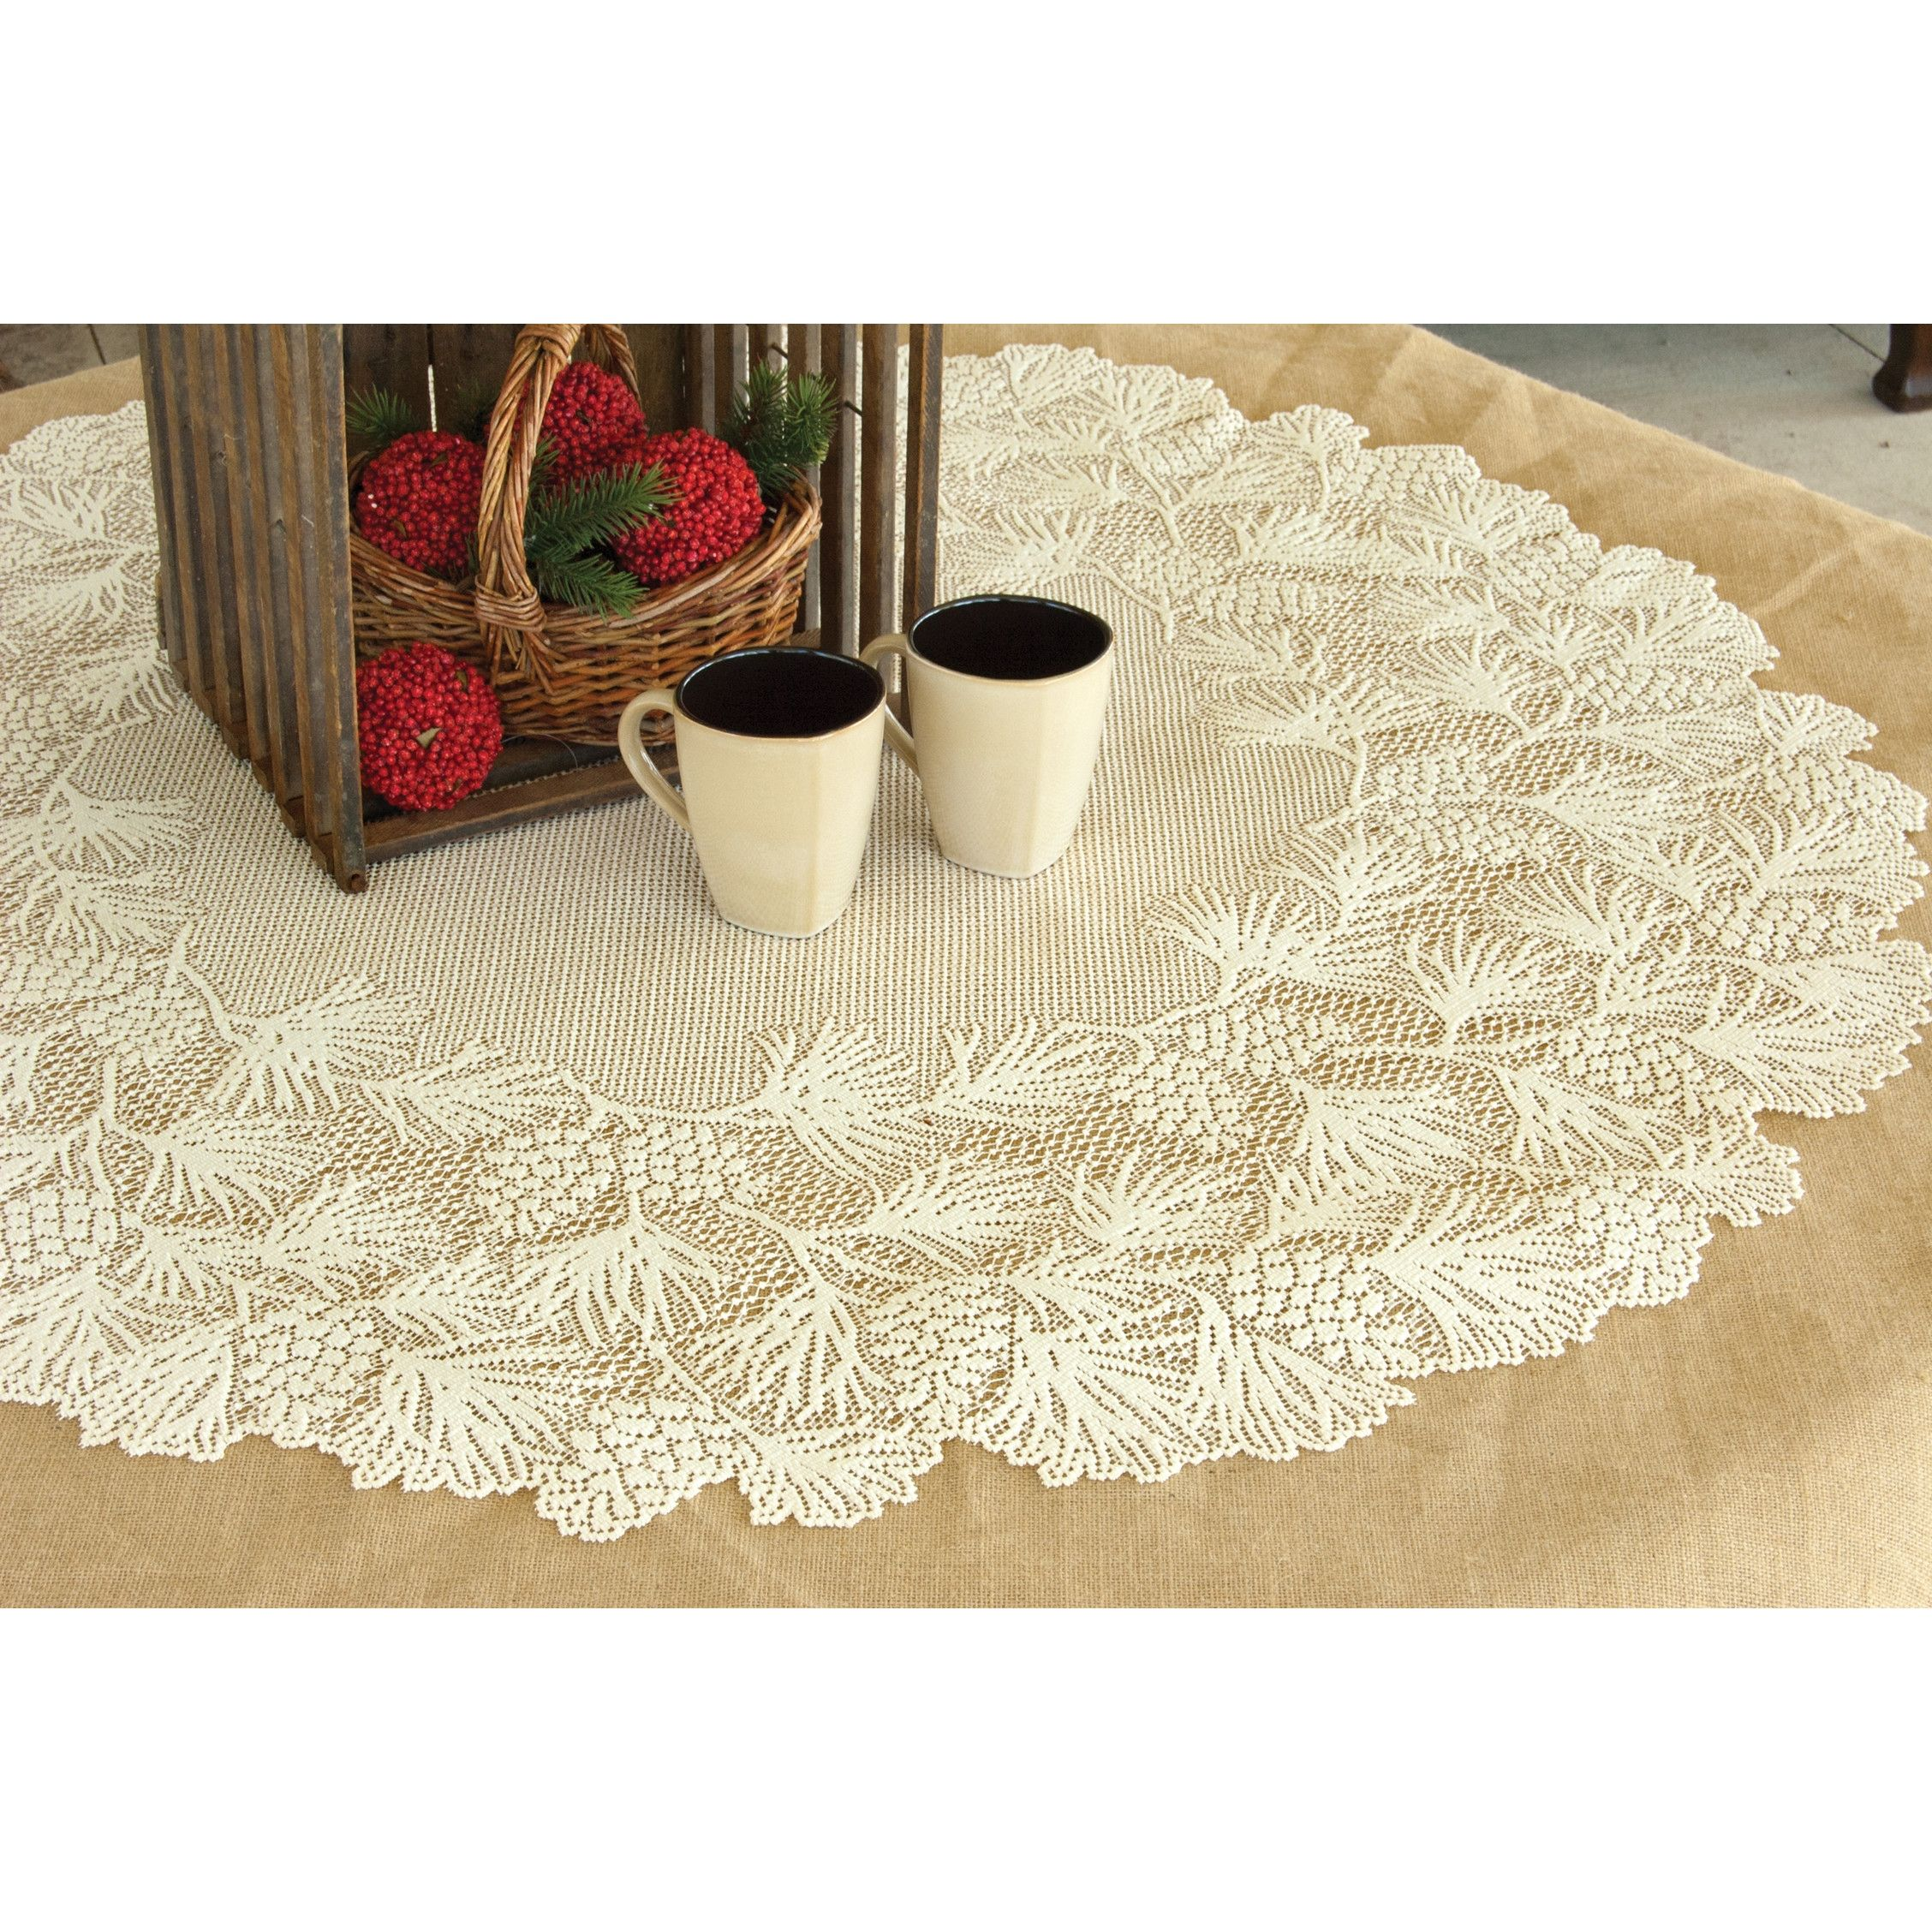 Dining Room Table Toppers Beauteous Round Lace Table Toppers  Httpargharts  Pinterest  Lace Design Inspiration